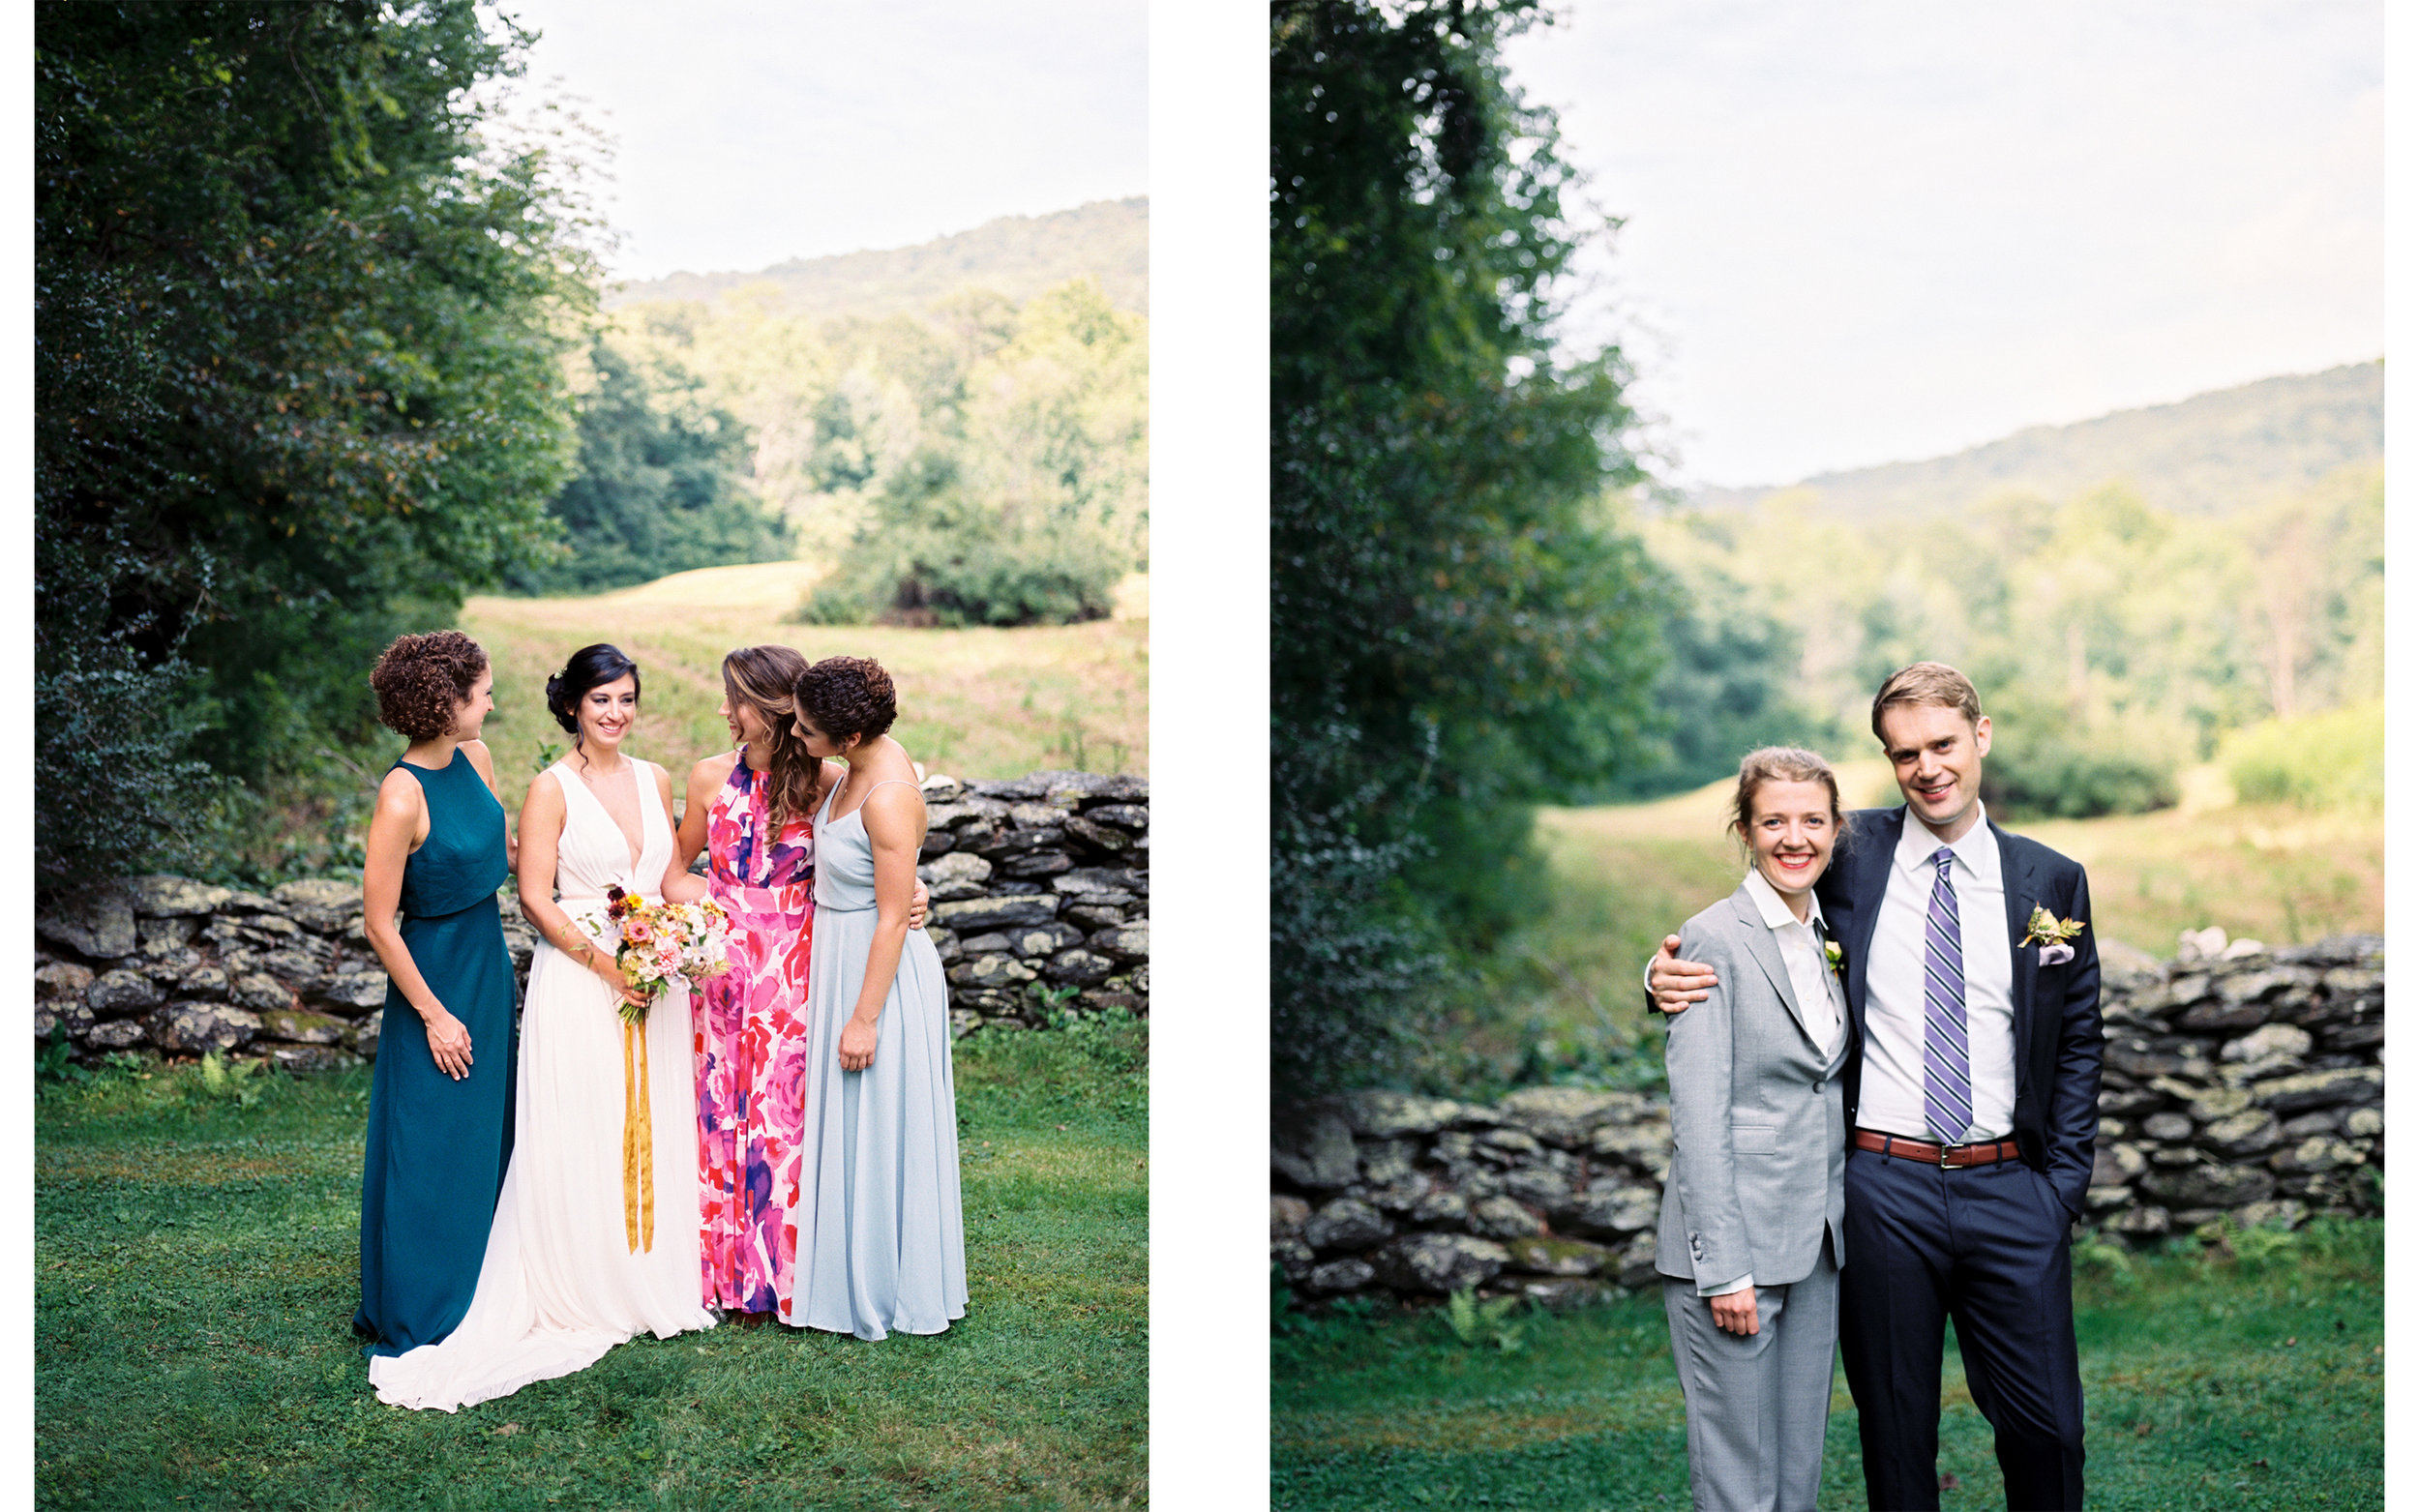 Berkshires Wedding Fine Art Wedding Photographer_Meg Haley Photographs_013.jpg